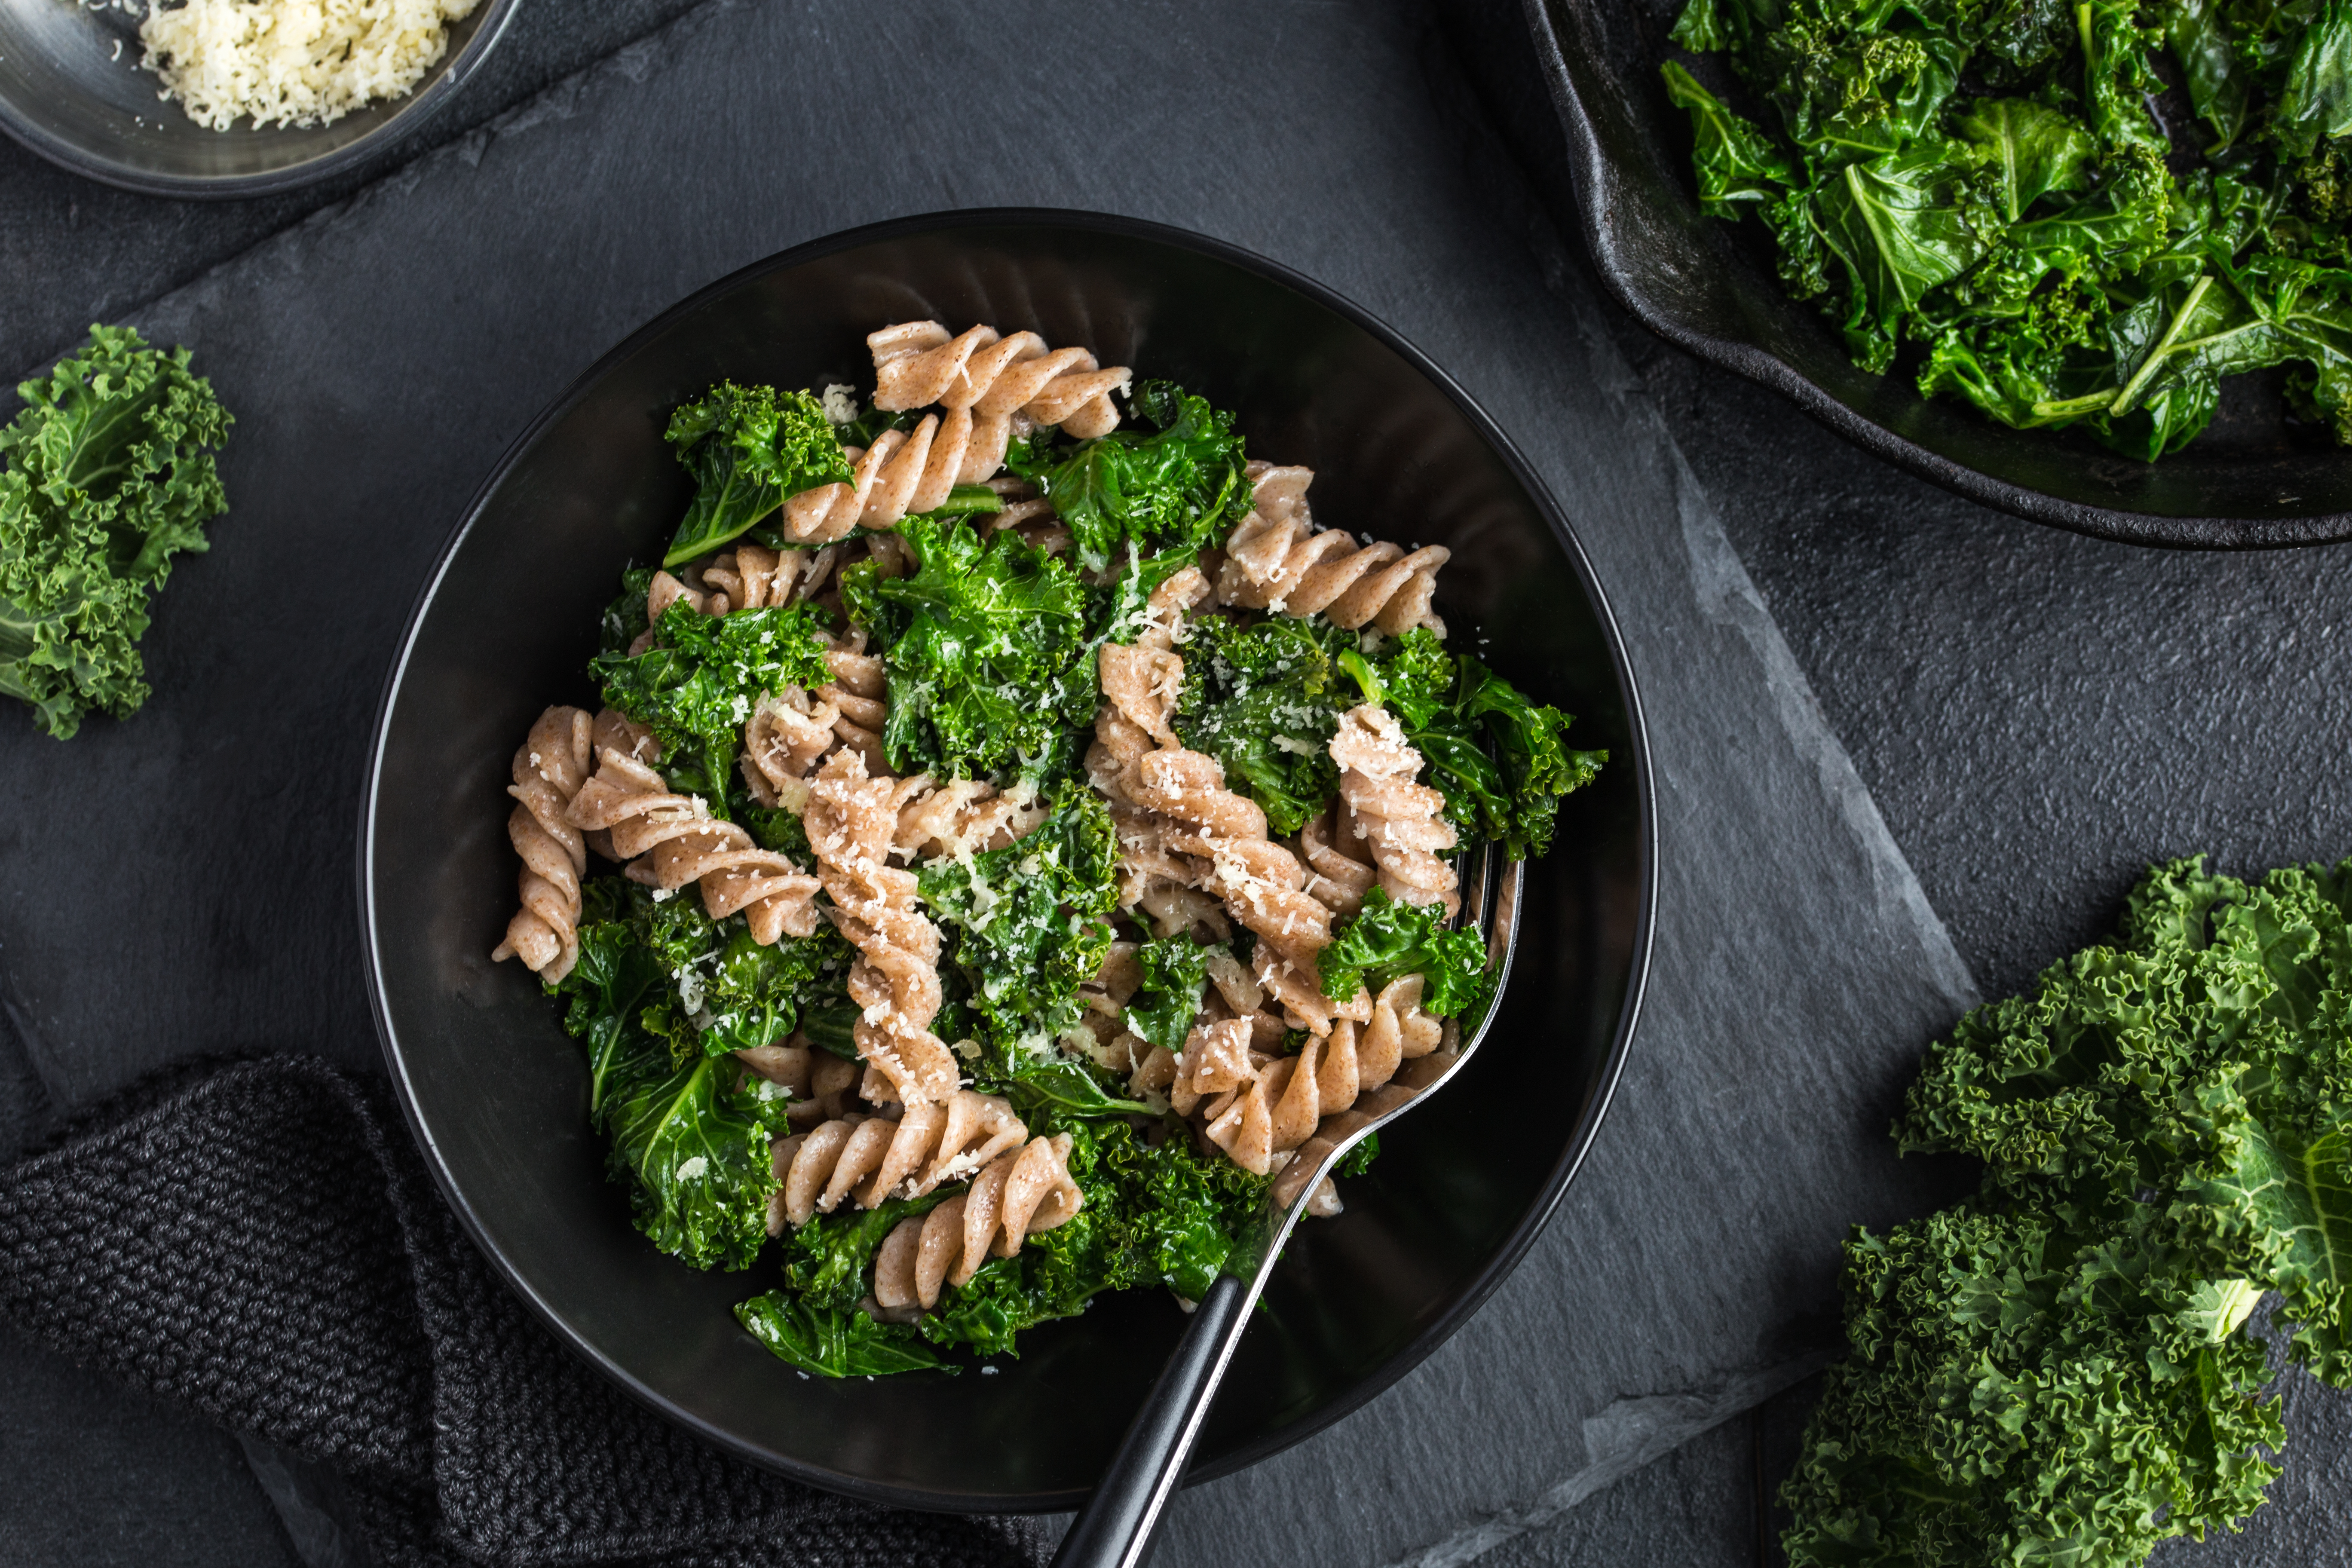 Whole grain pasta with kale in black bowl on dark background, top view